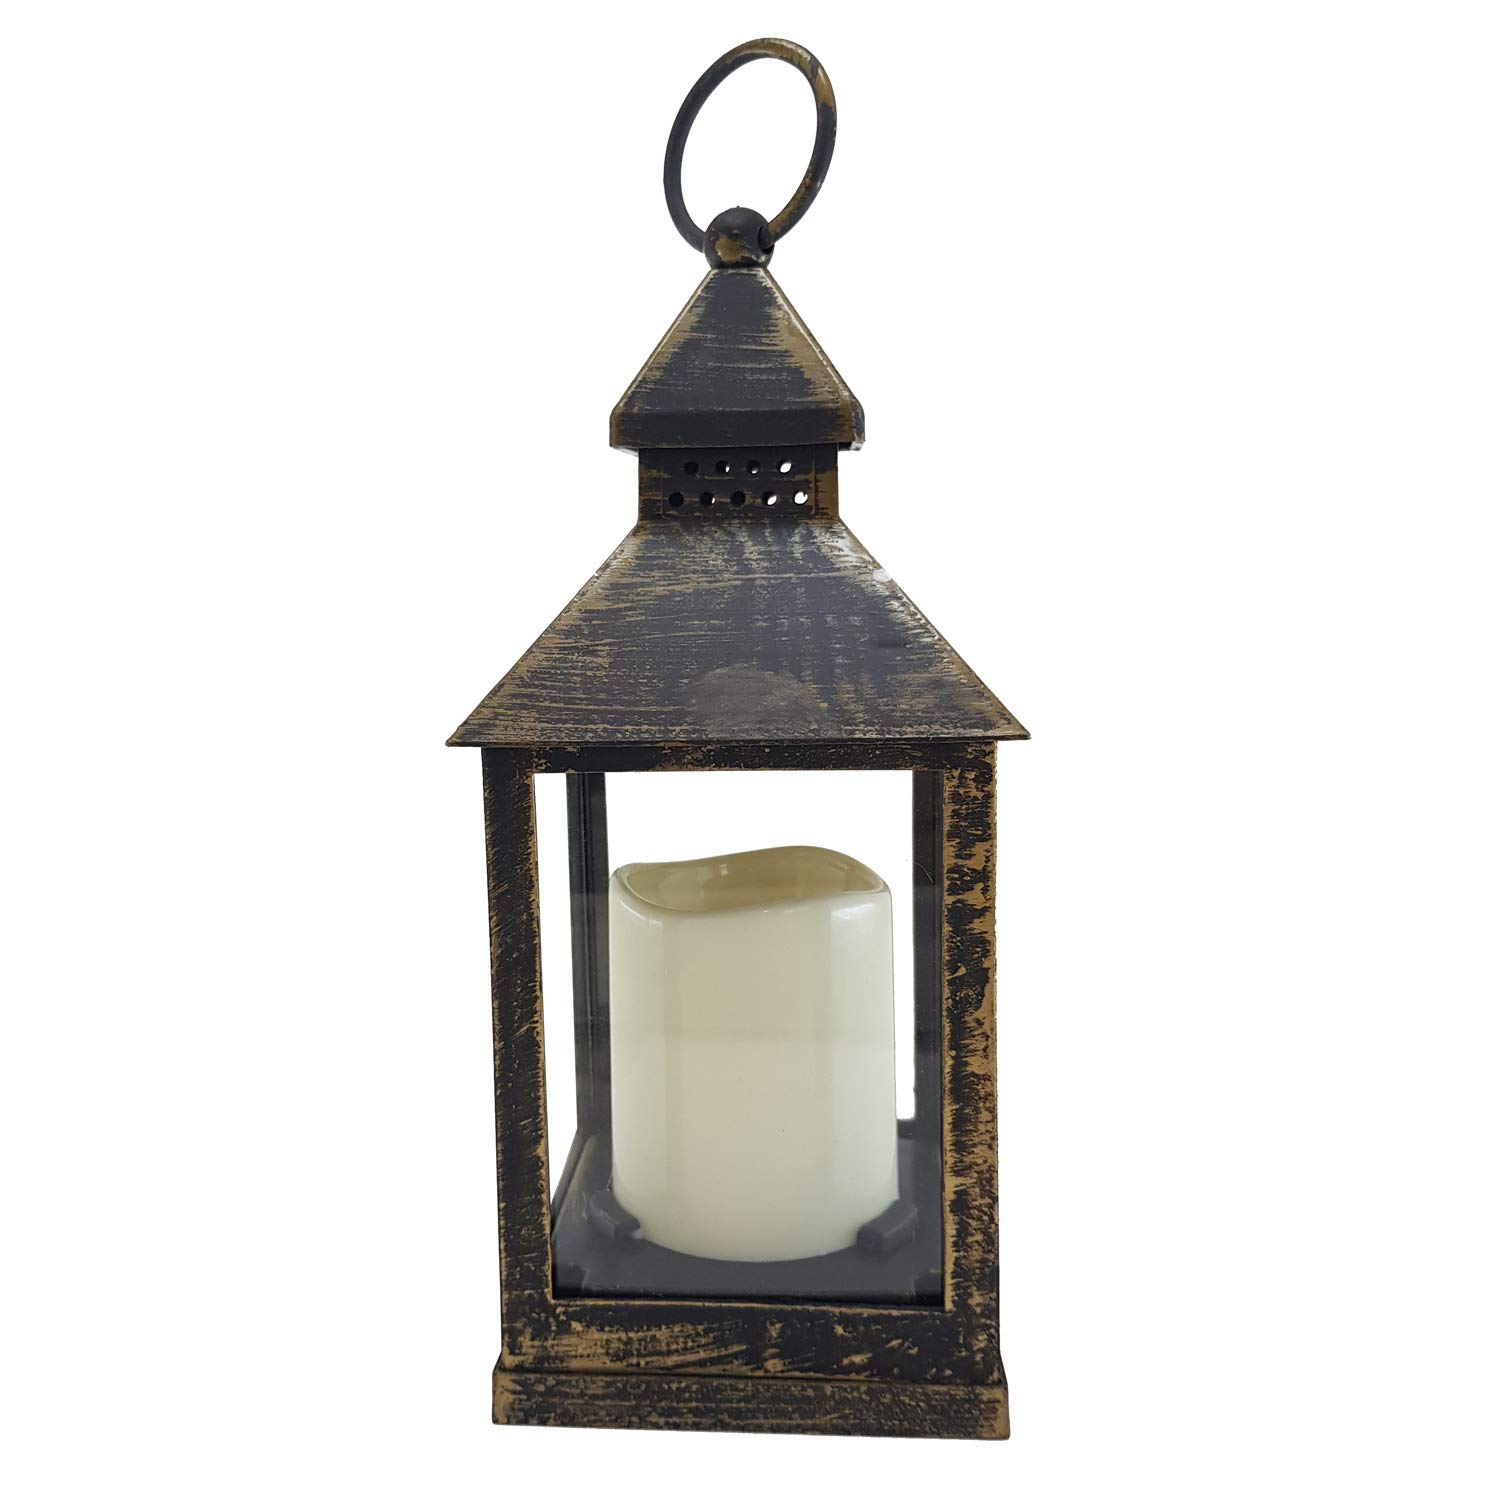 Astin of London 2 Pack Battery Powered Flickering Flame Effect LED Candle Hanging Lantern Antique Black Copper /…